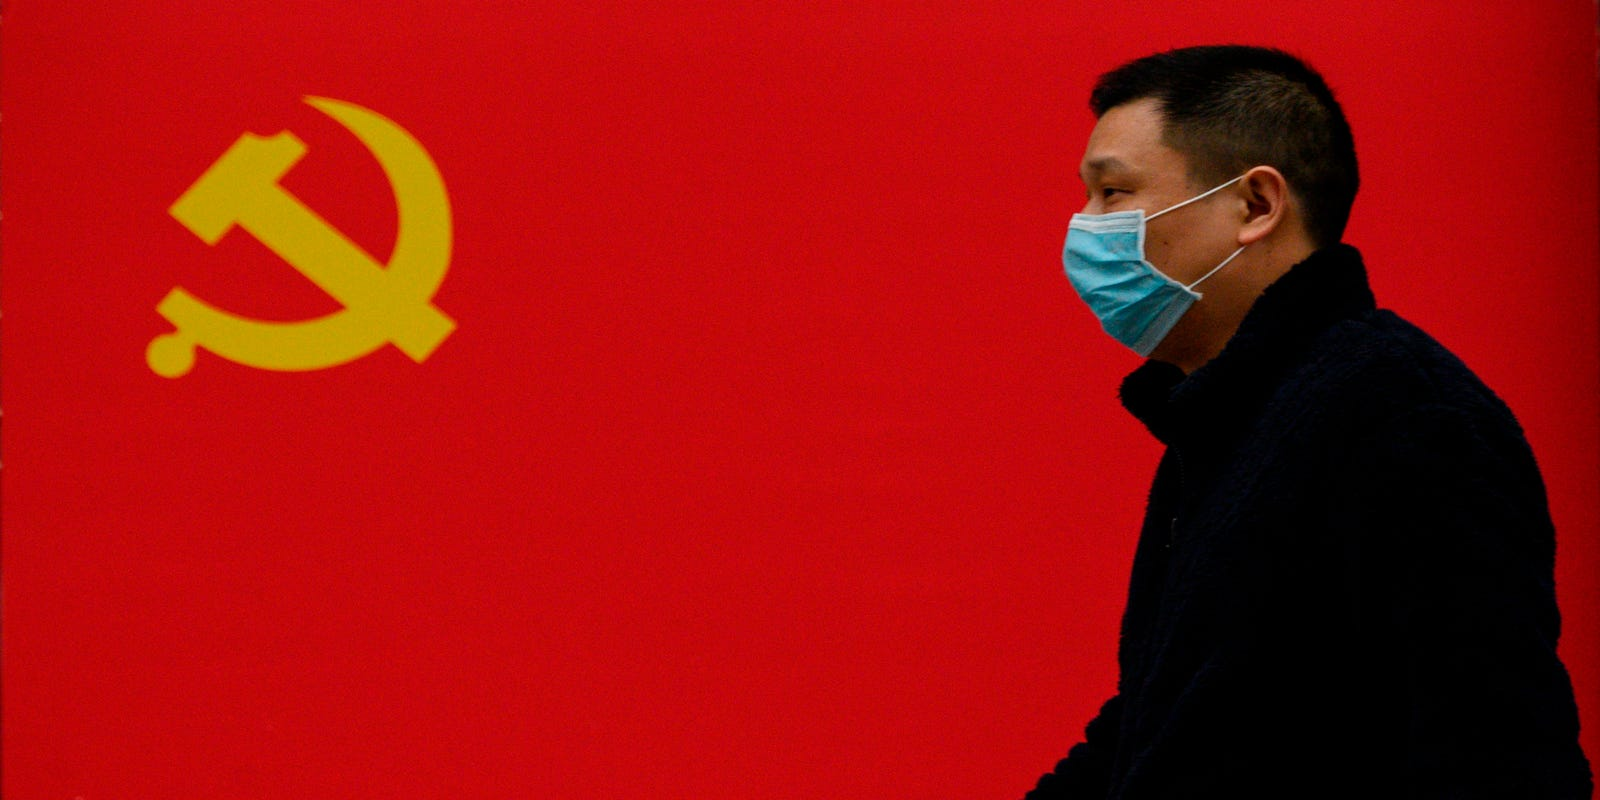 Coronavirus: This is how China beat COVID-19. Could America handle it?